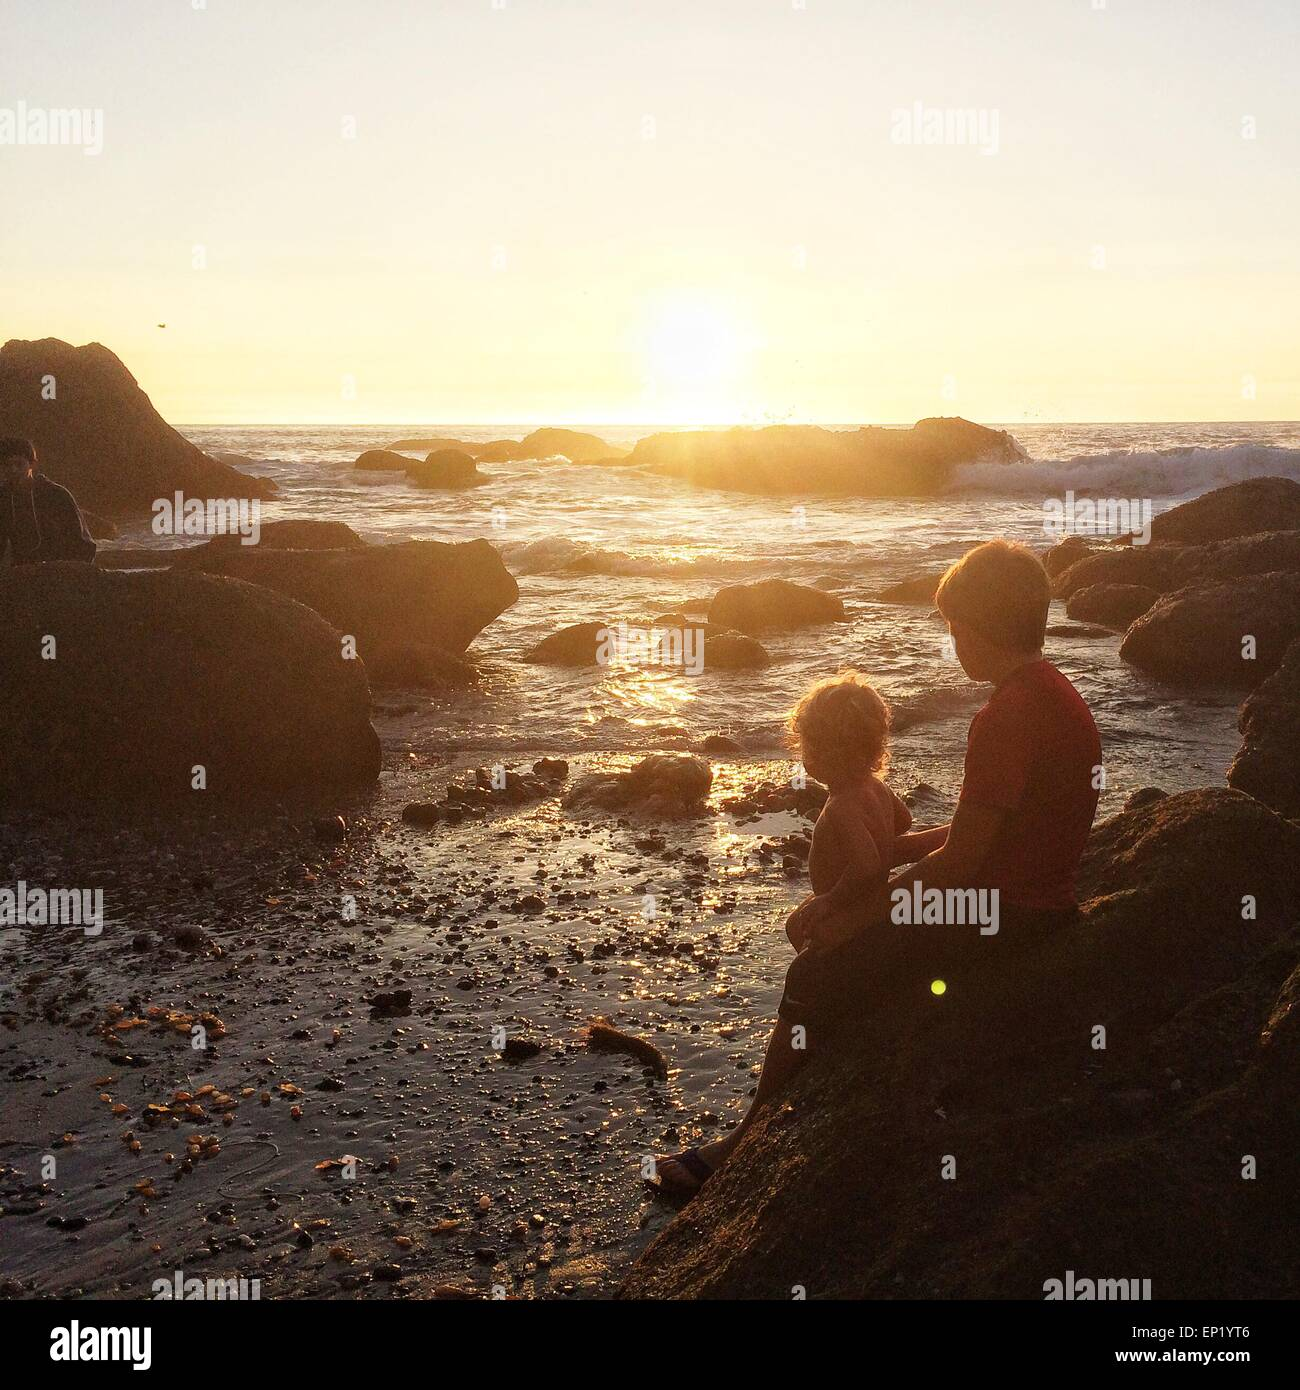 Two boys sitting on rocks at the beach at sunset, Dana Point, California, USA - Stock Image